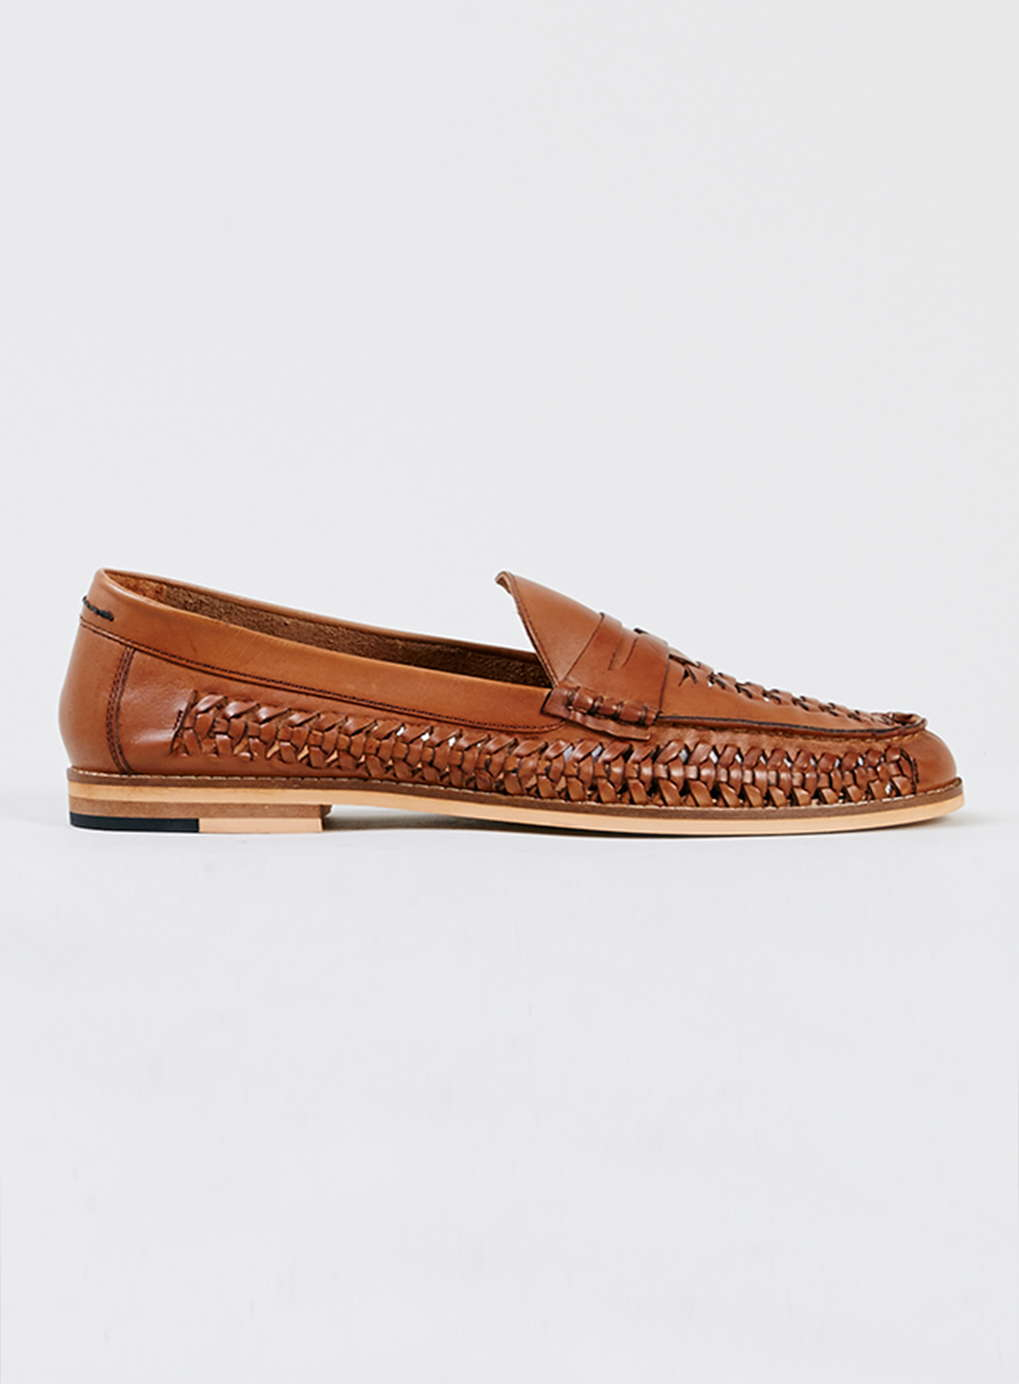 Topman Marne Tan Leather Woven Loafers In Brown For Men Lyst